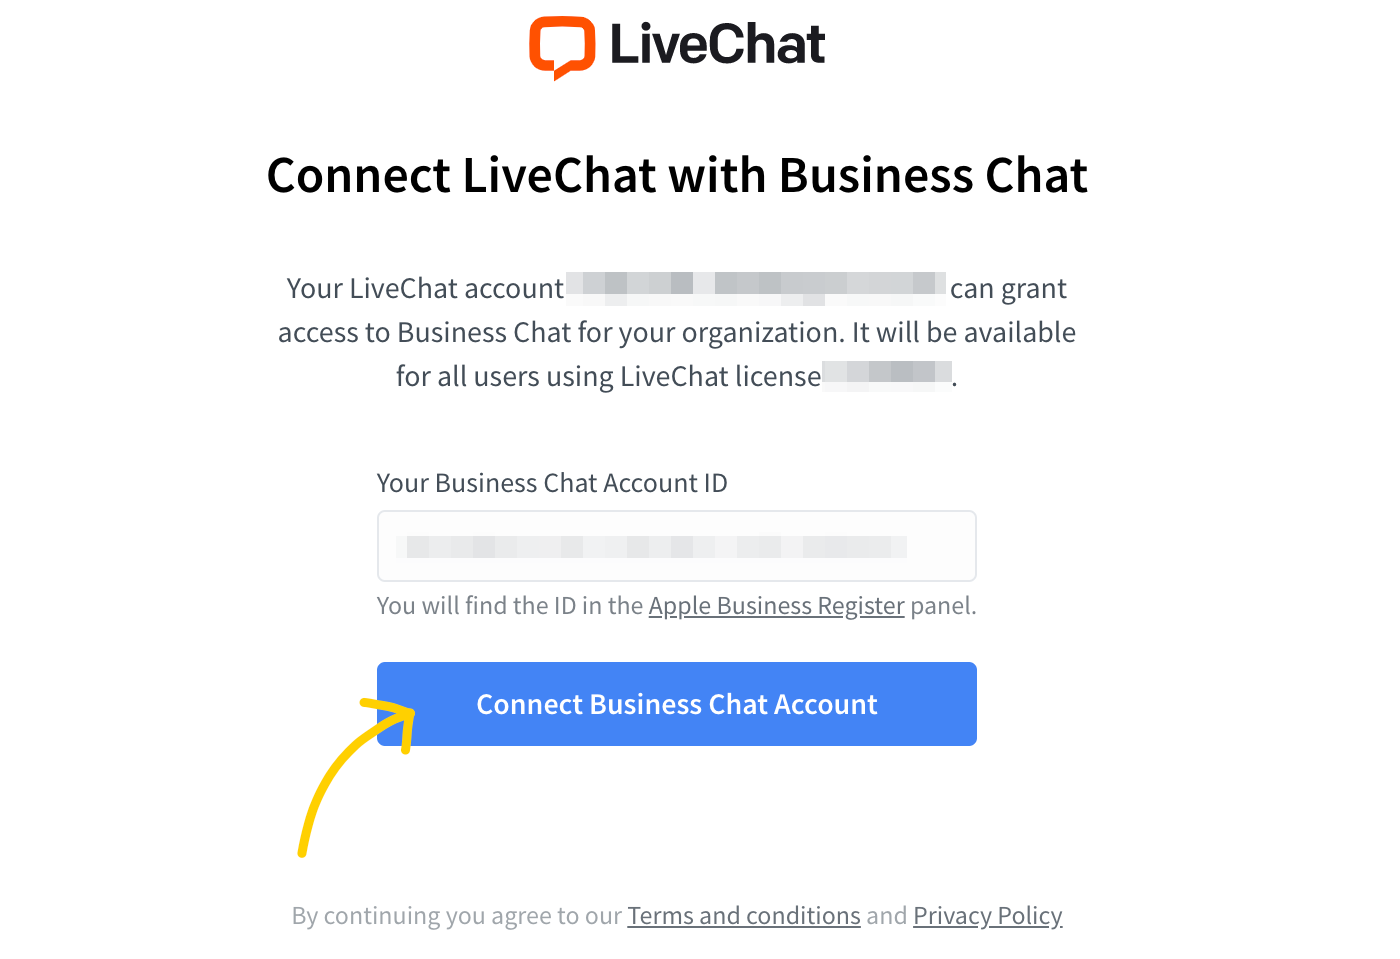 Connect LiveChat with Business Chat